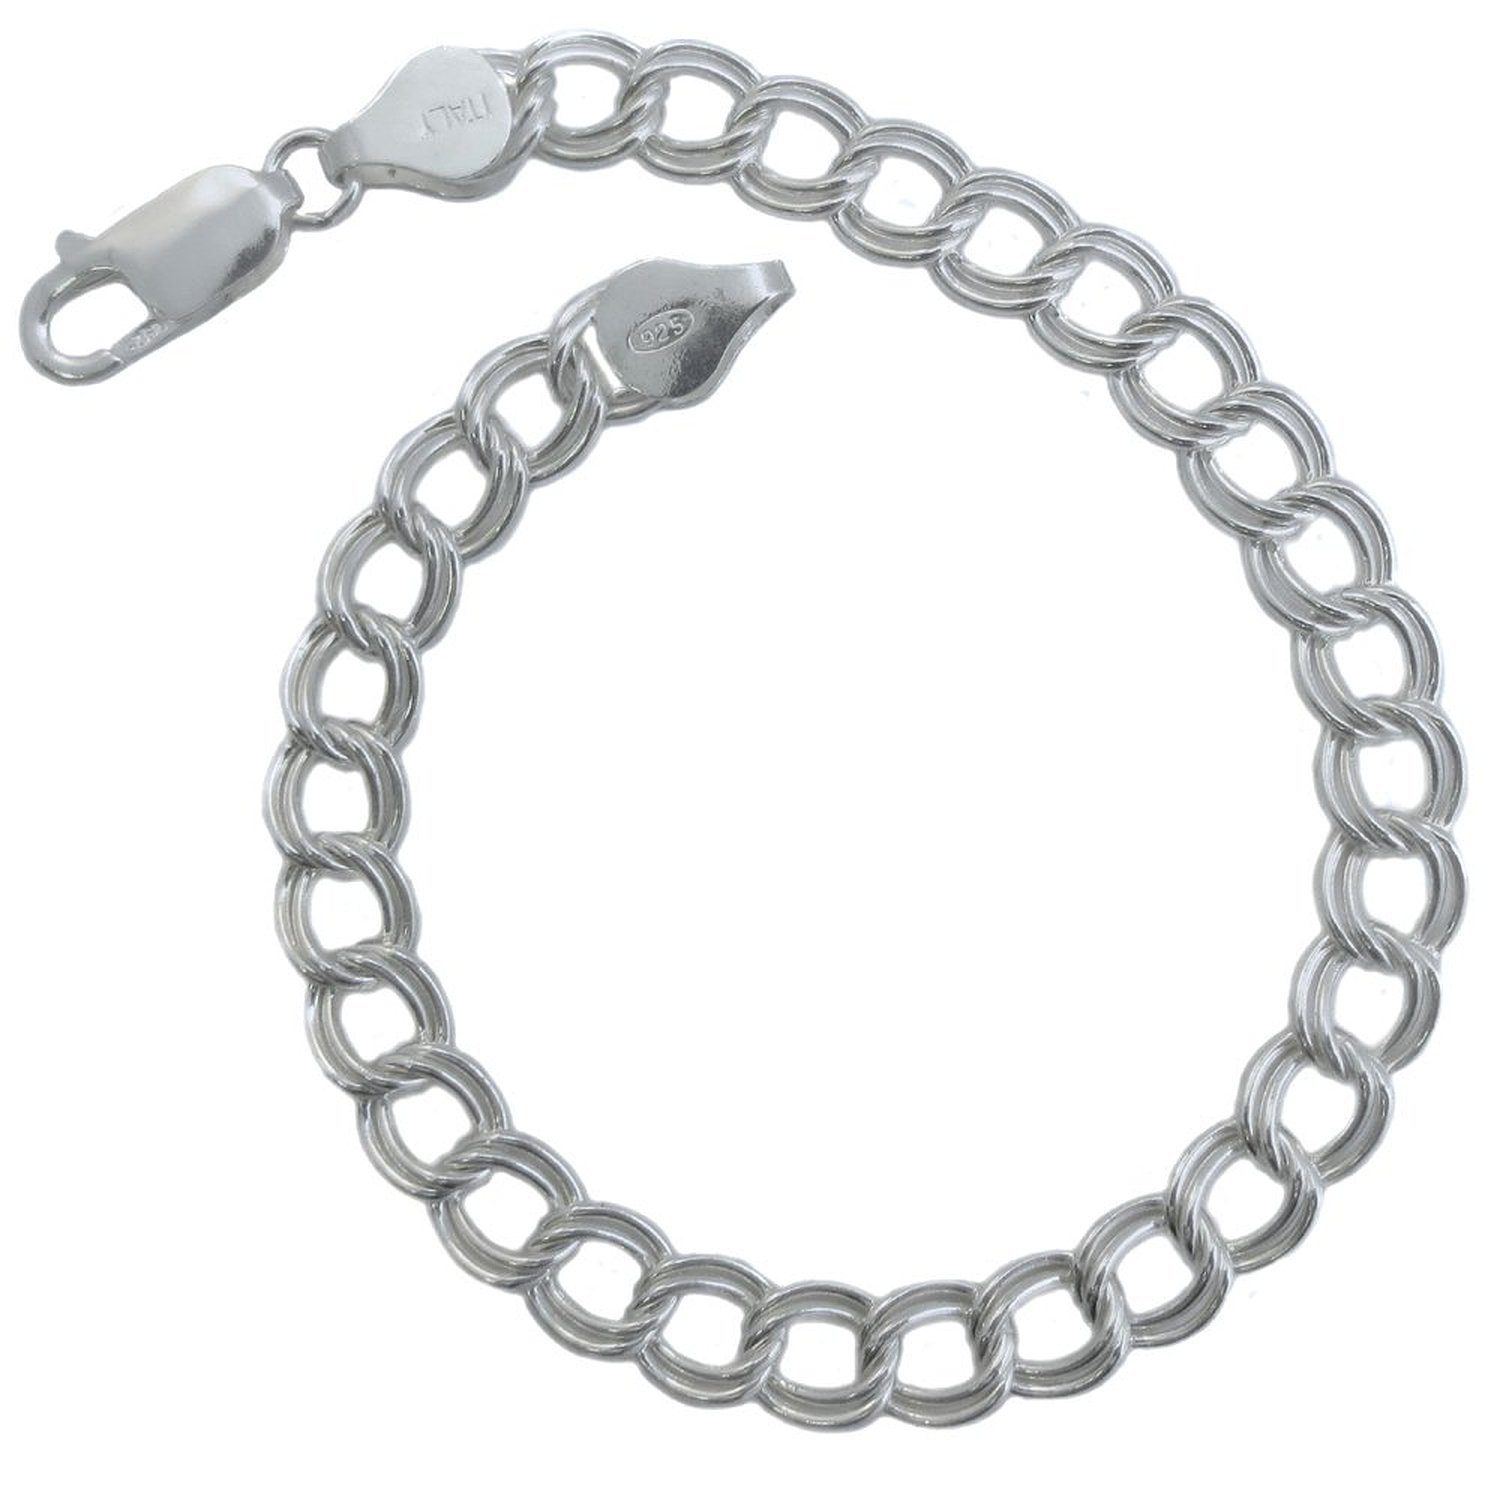 Amazon Milano Chains 925 Sterling Silver Italian Double Link